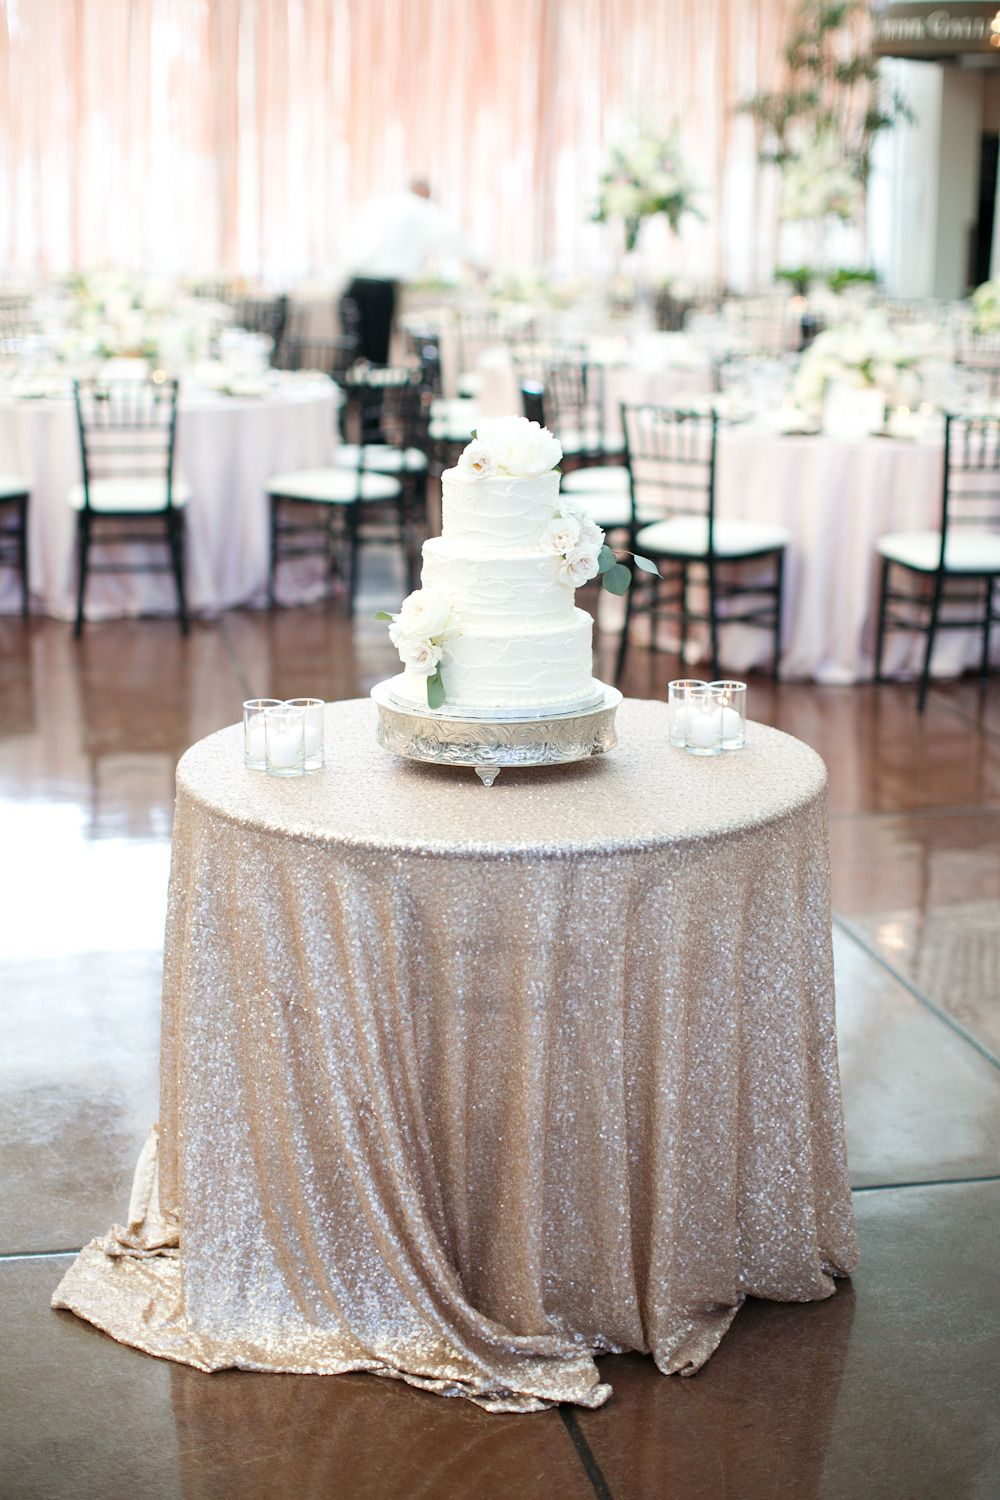 #cake-table, #tablecloth, #sequins Photography: Heather Roth Fine Art